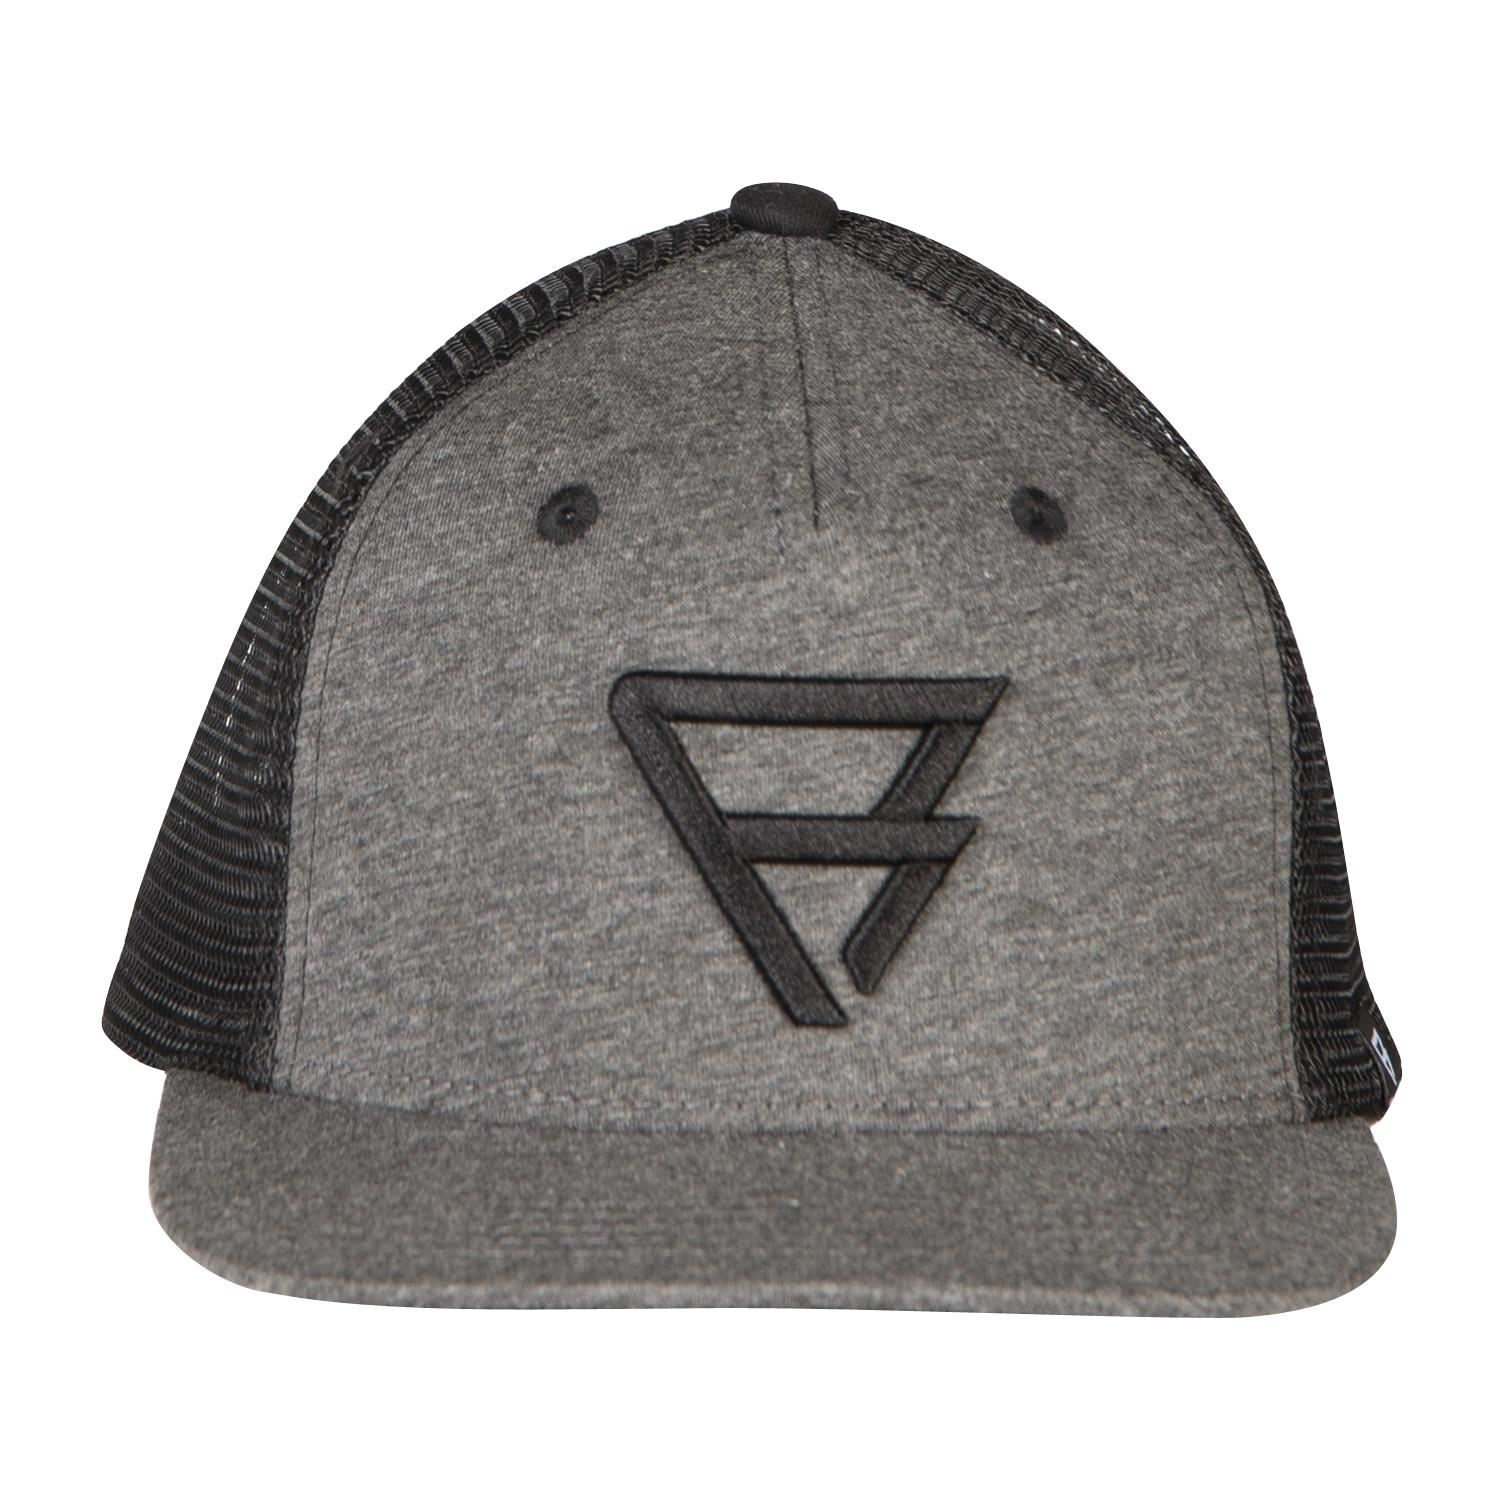 Brunotti Hostiler  (grey) - men caps - Brunotti online shop